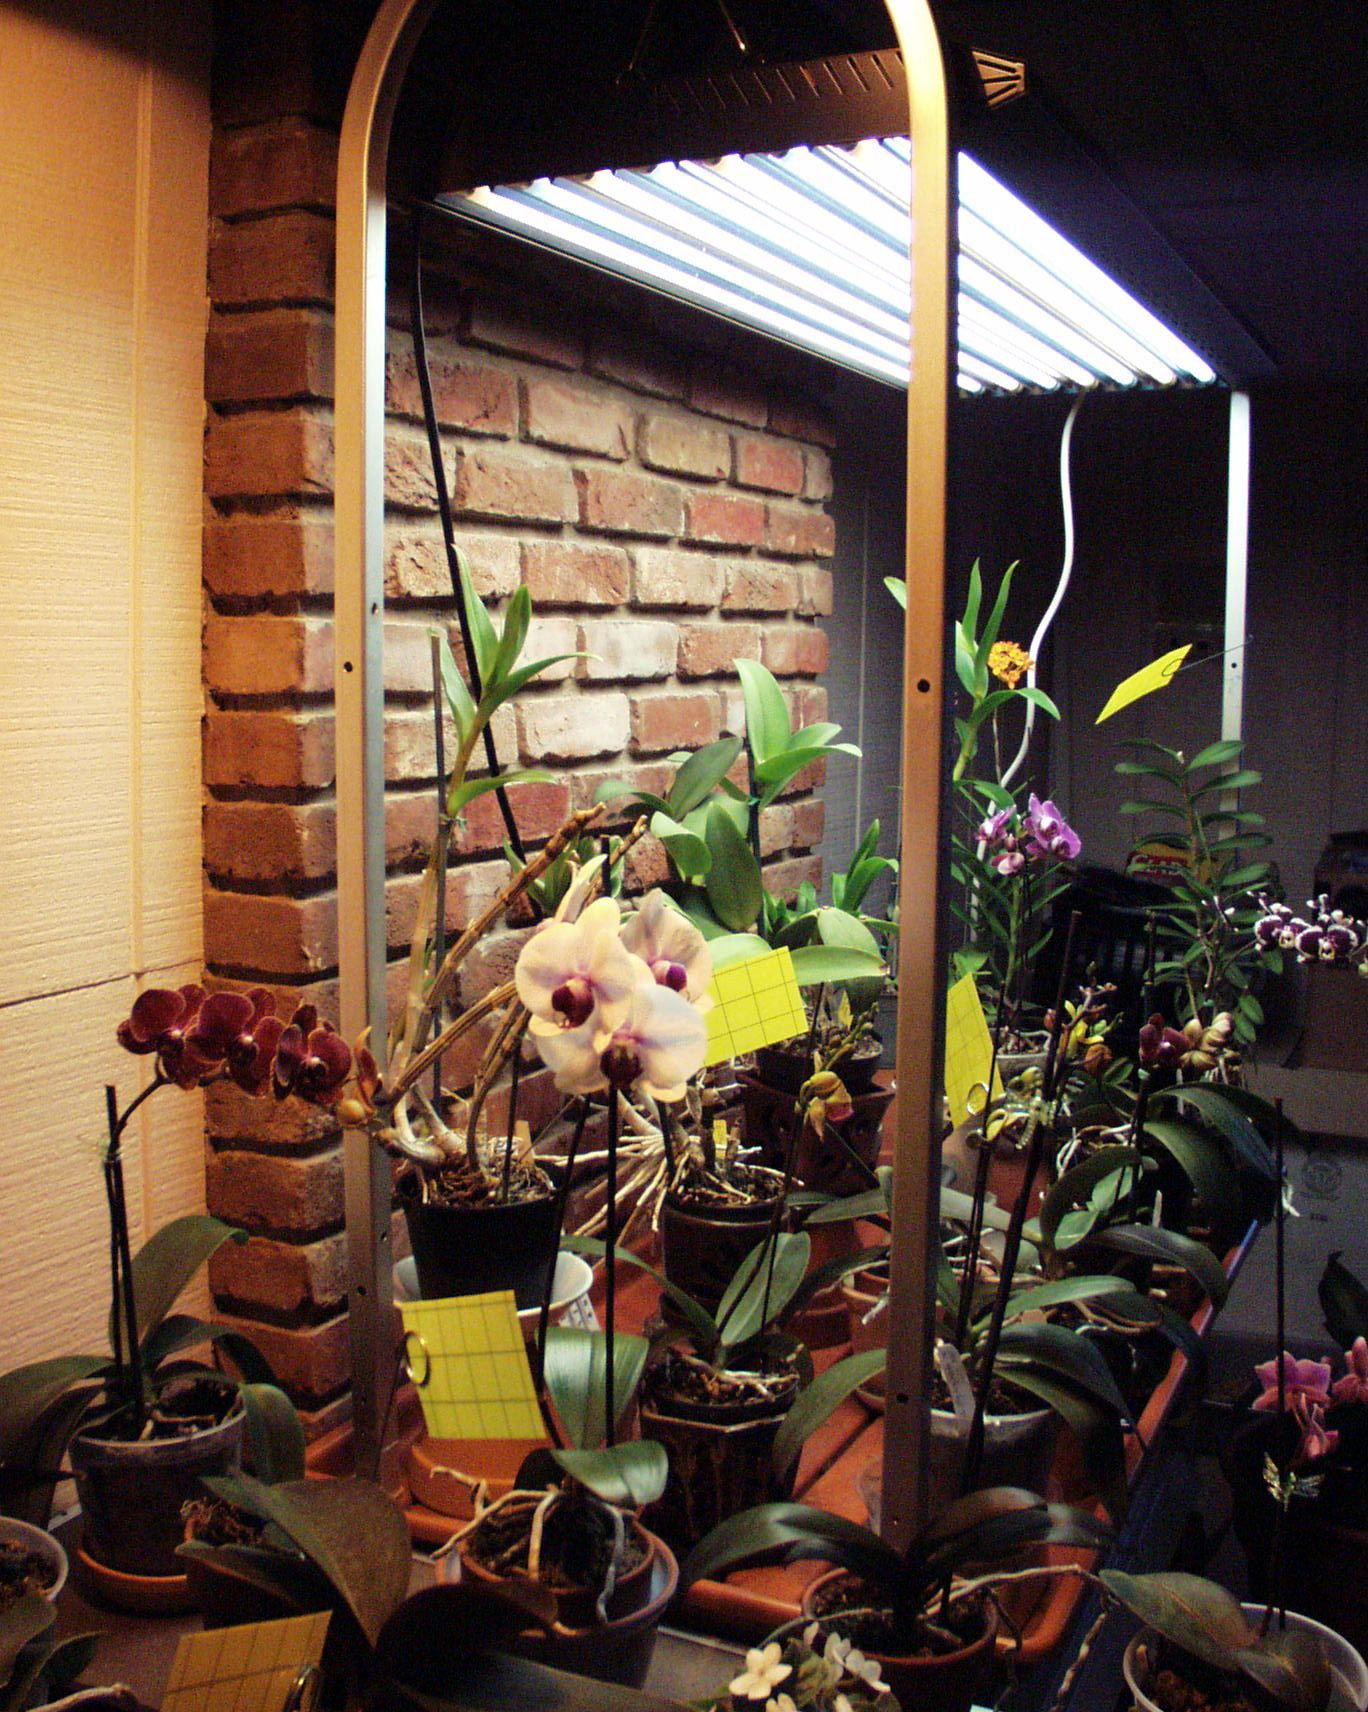 Orchid collection under t5 high output fluorescent grow Plant grow lights